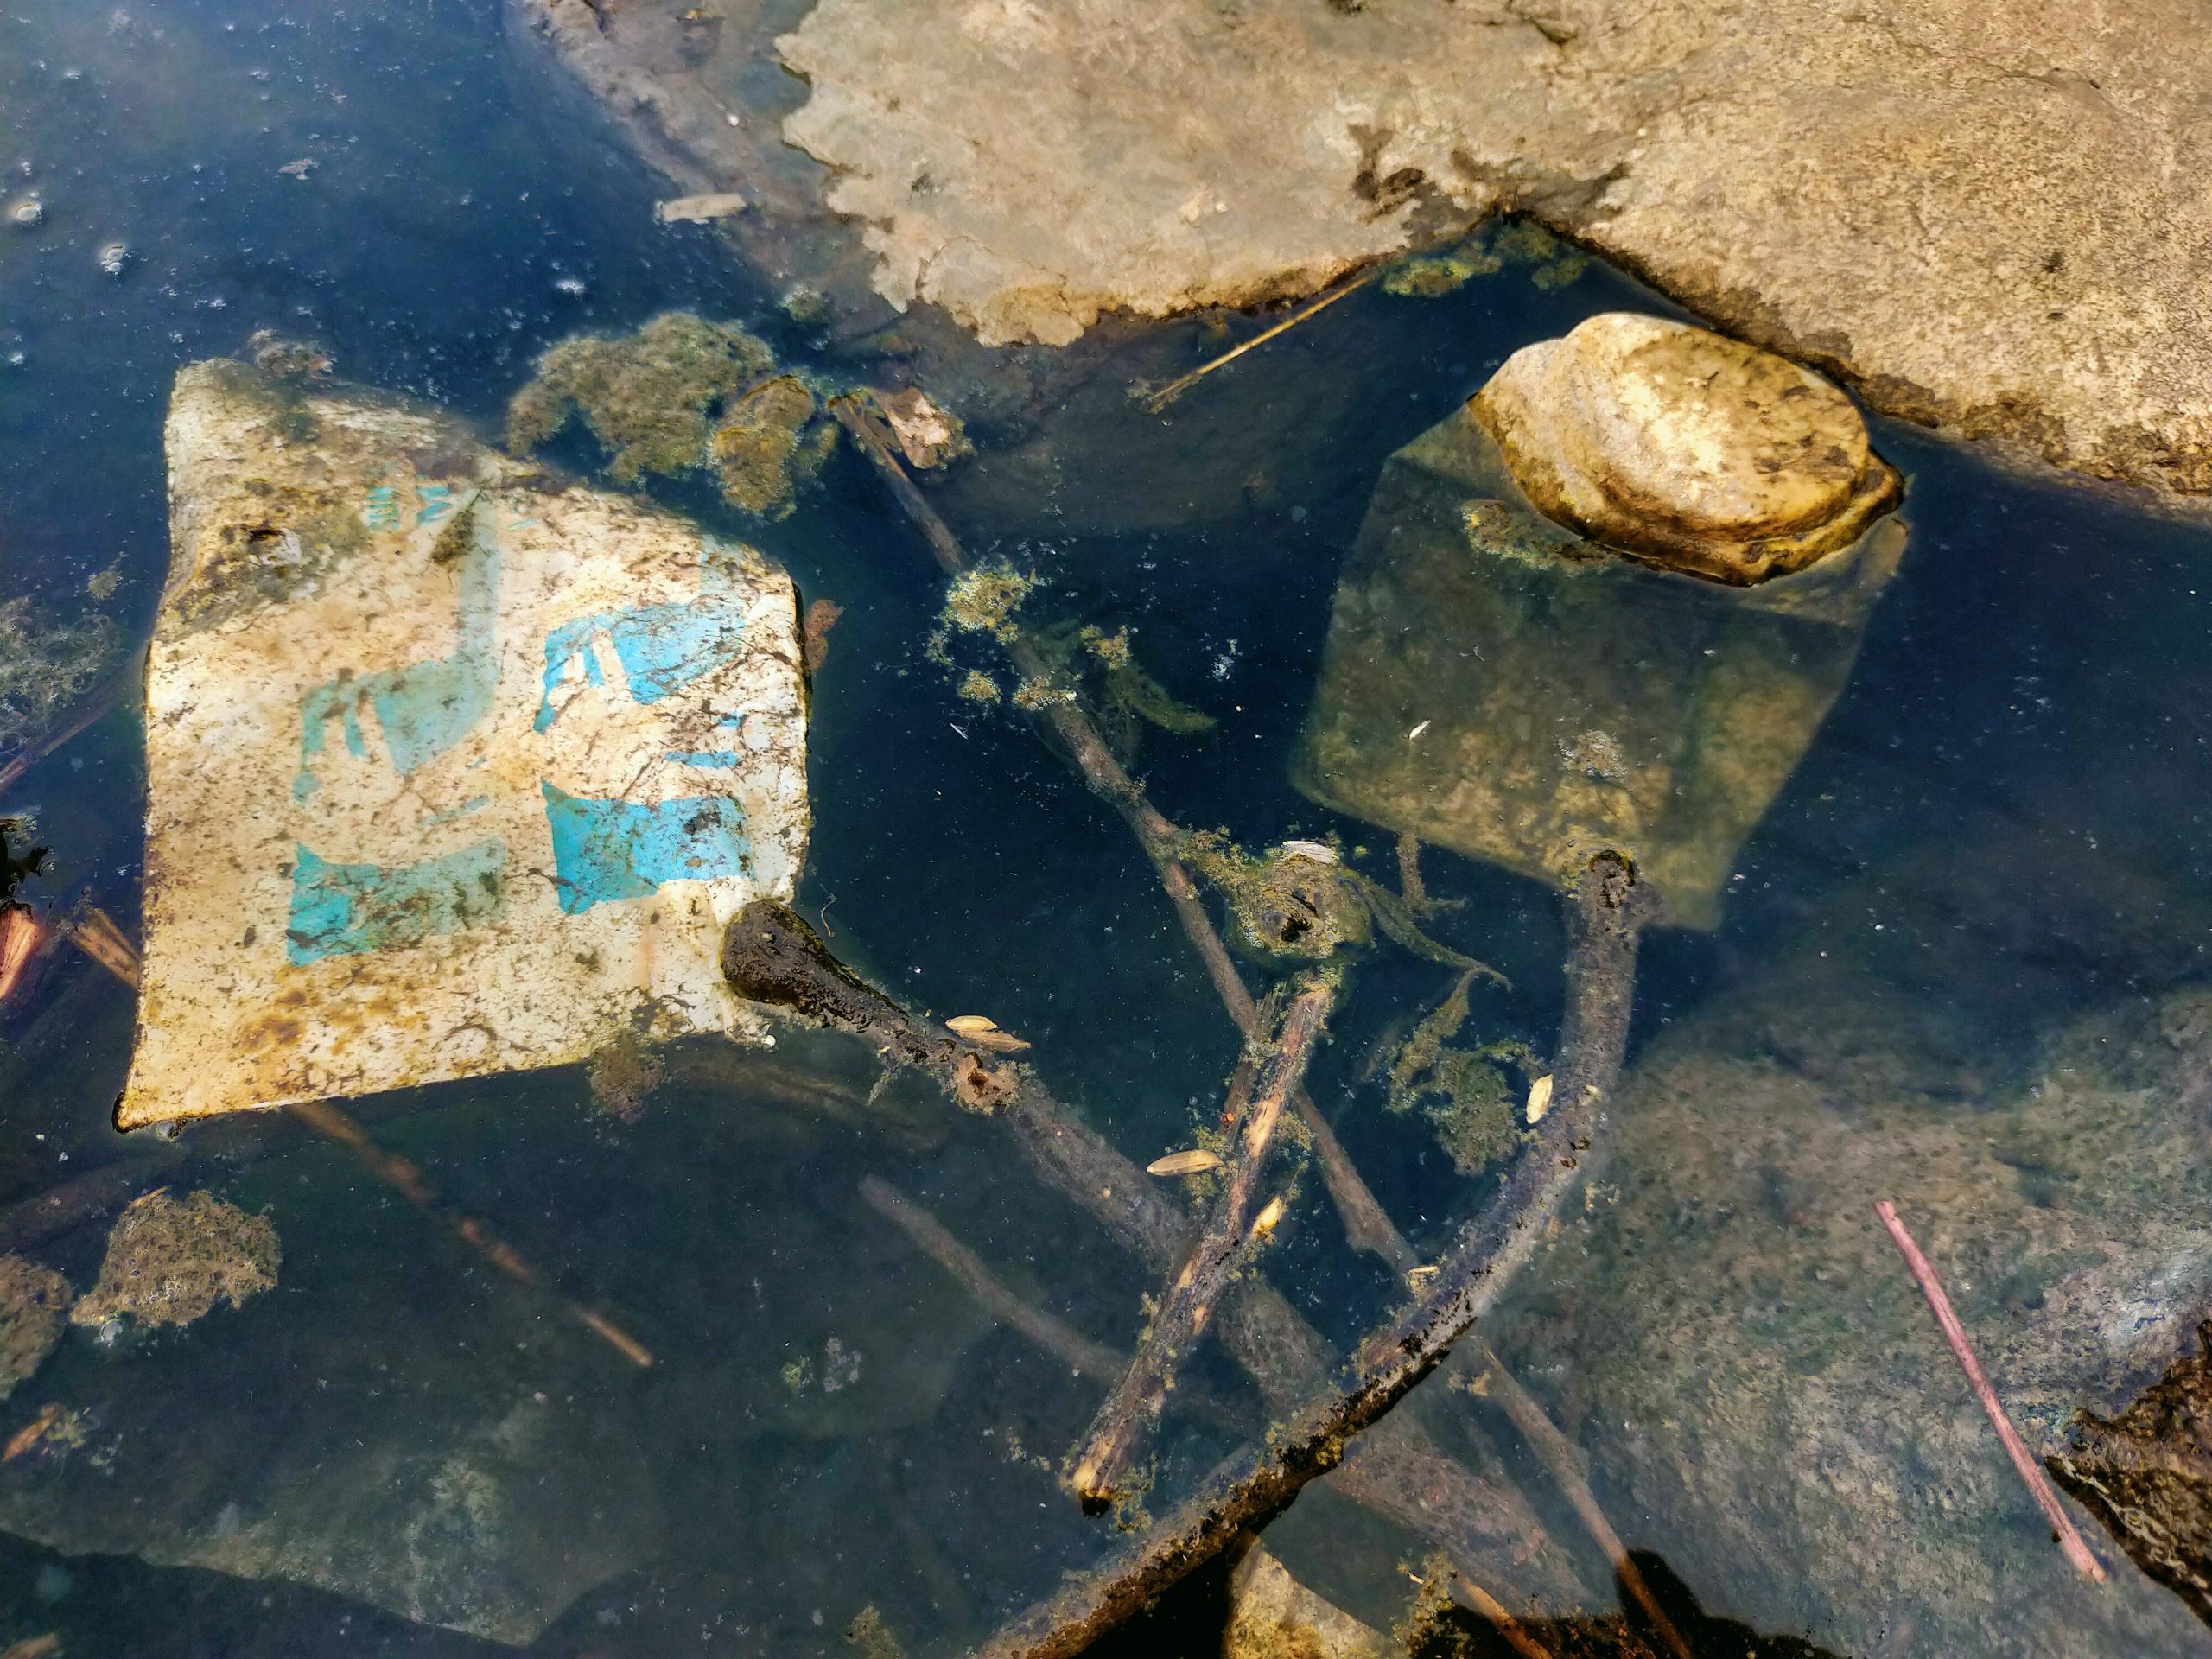 Waste in a water resource